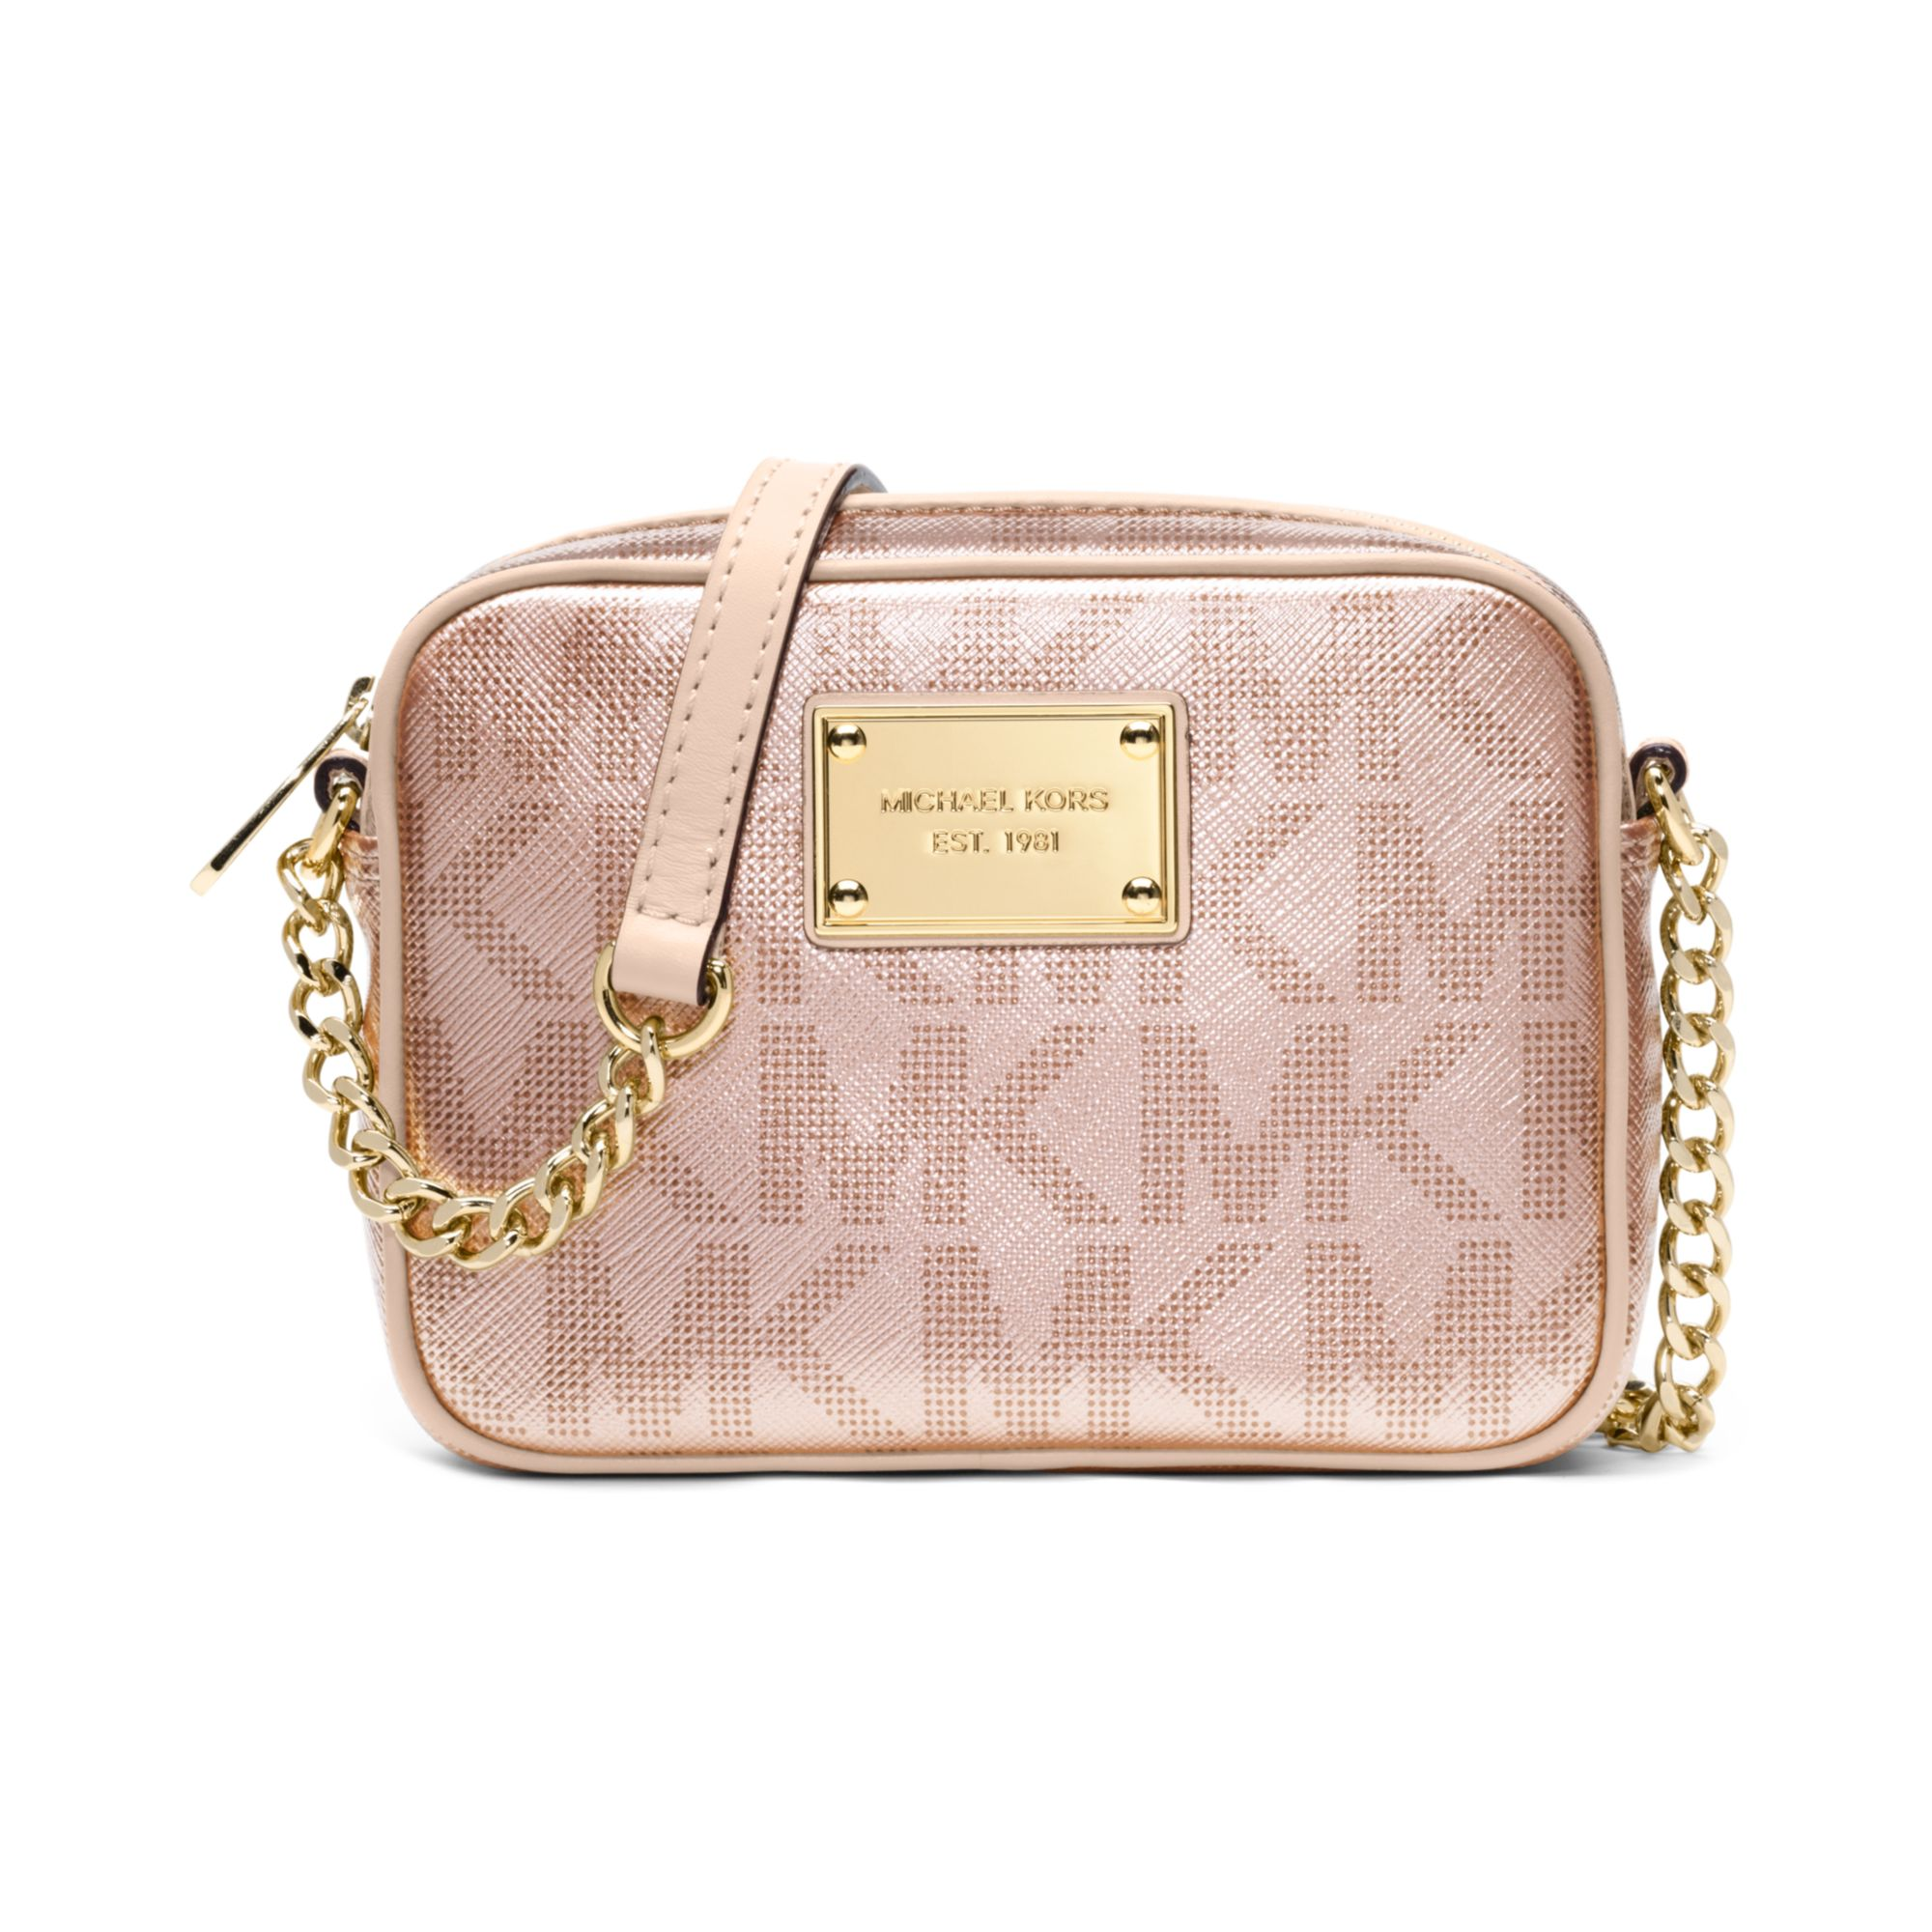 4f059c22ead5 Lyst - Michael Kors Signature Metallic Crossbody in Pink